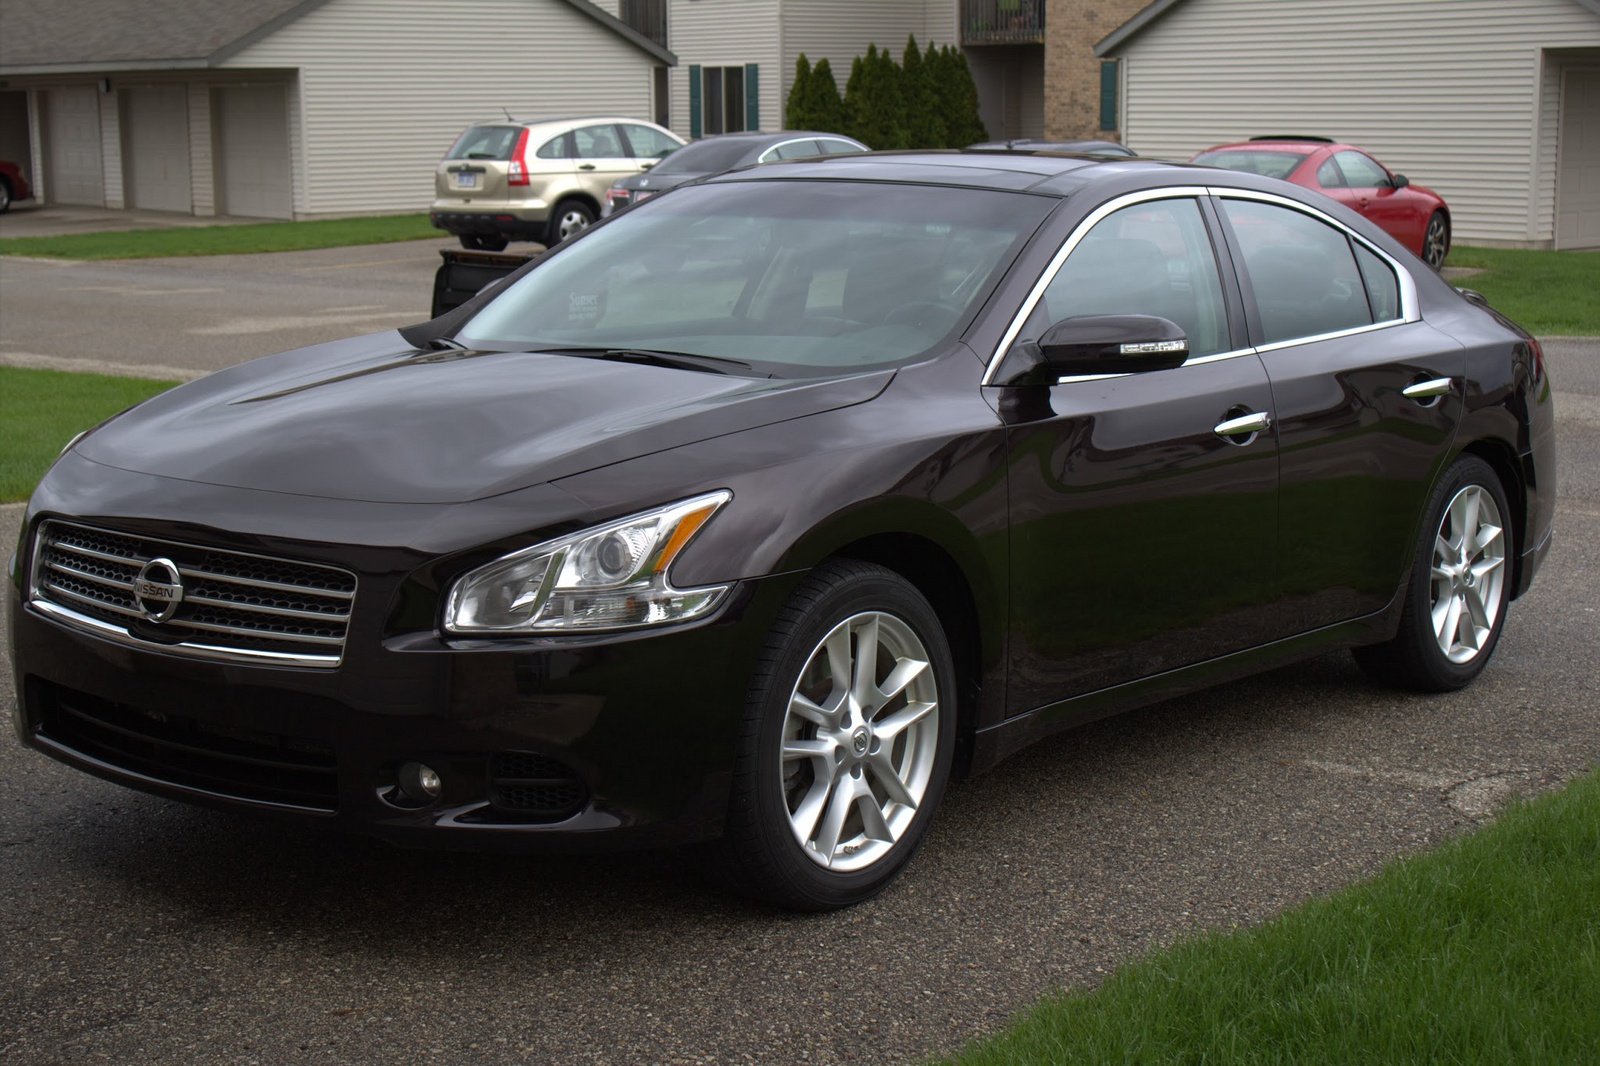 Nissan Altima Gas Mileage >> 2013 Nissan Maxima Specs | Autos Post